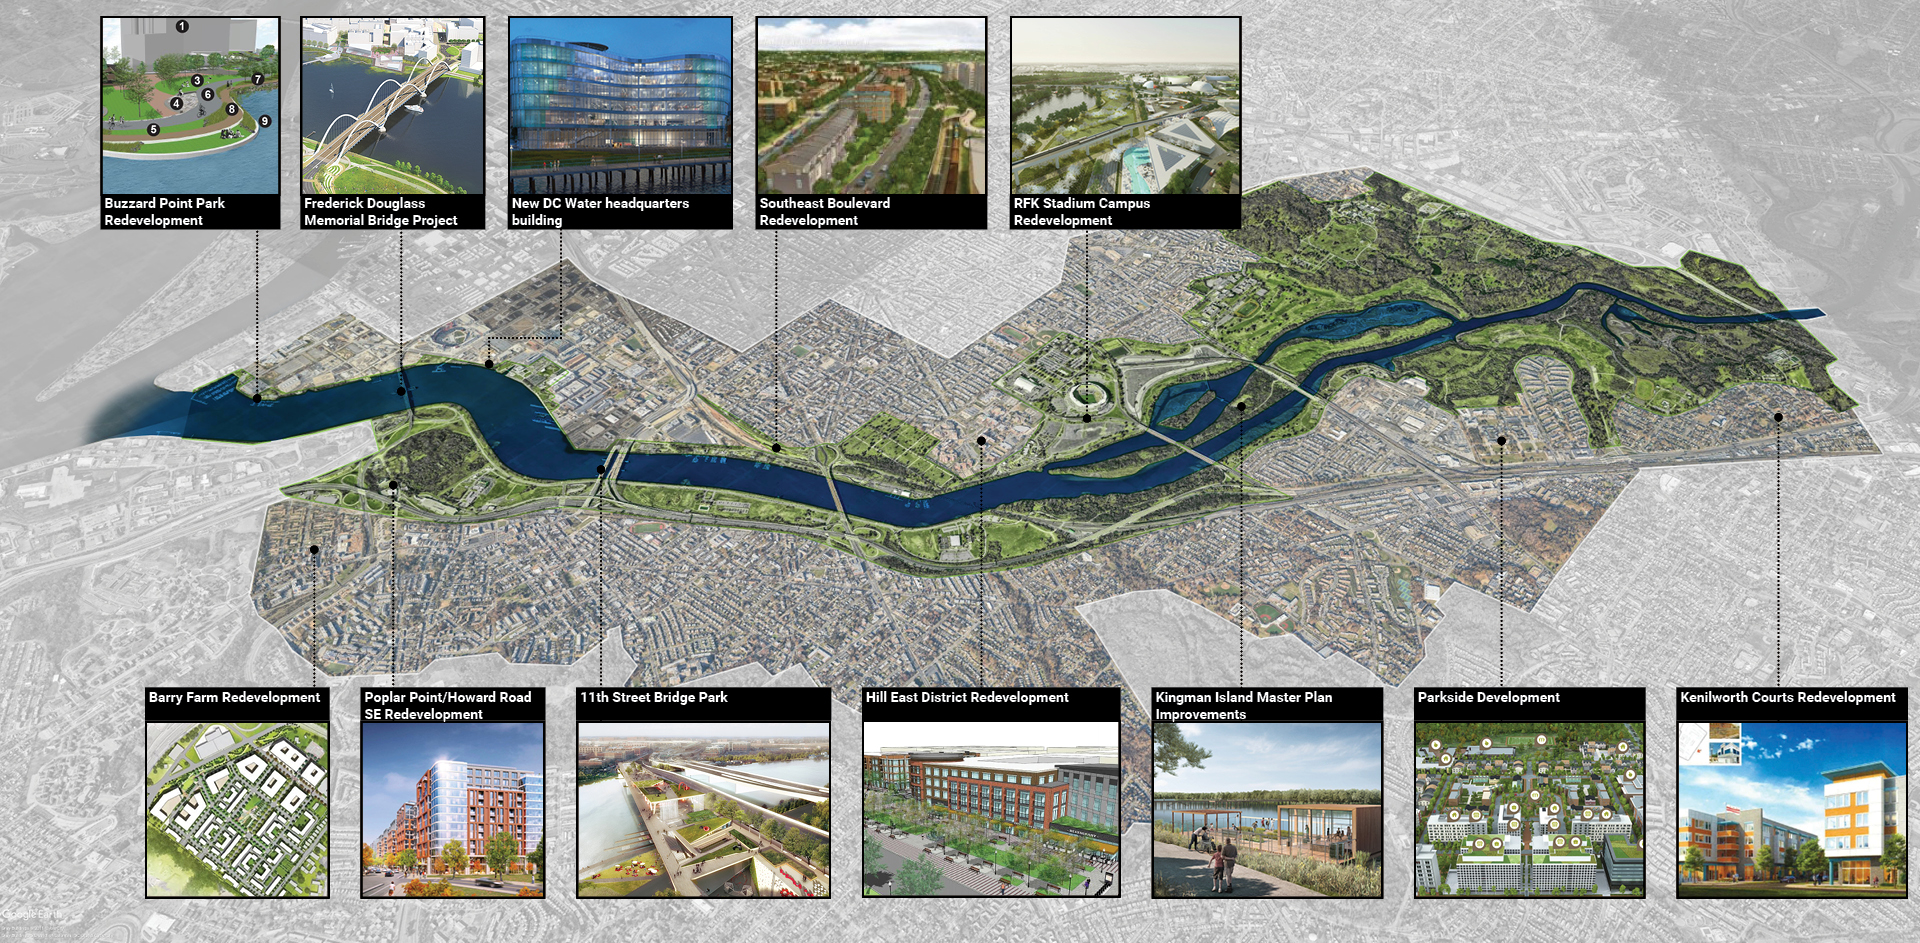 Some of the projects on the horizon along the Anacostia River corridor.